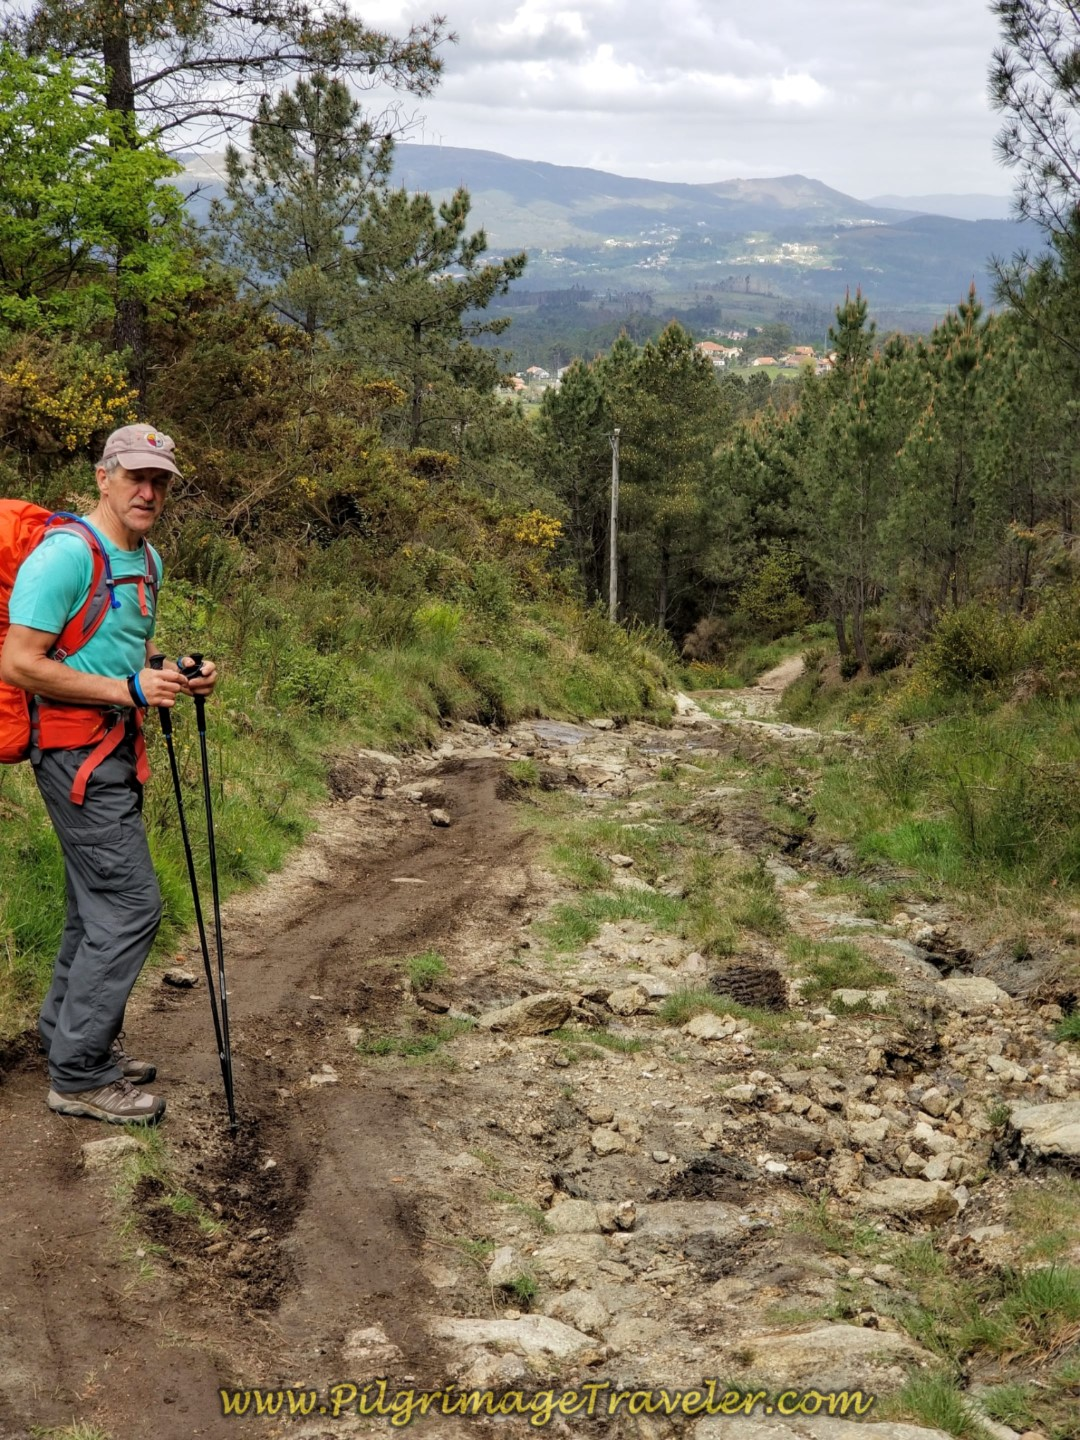 The Downhill, Almost as Steep and Rocky as the Uphill on day eighteen on the Central Route of the Portuguese Camino